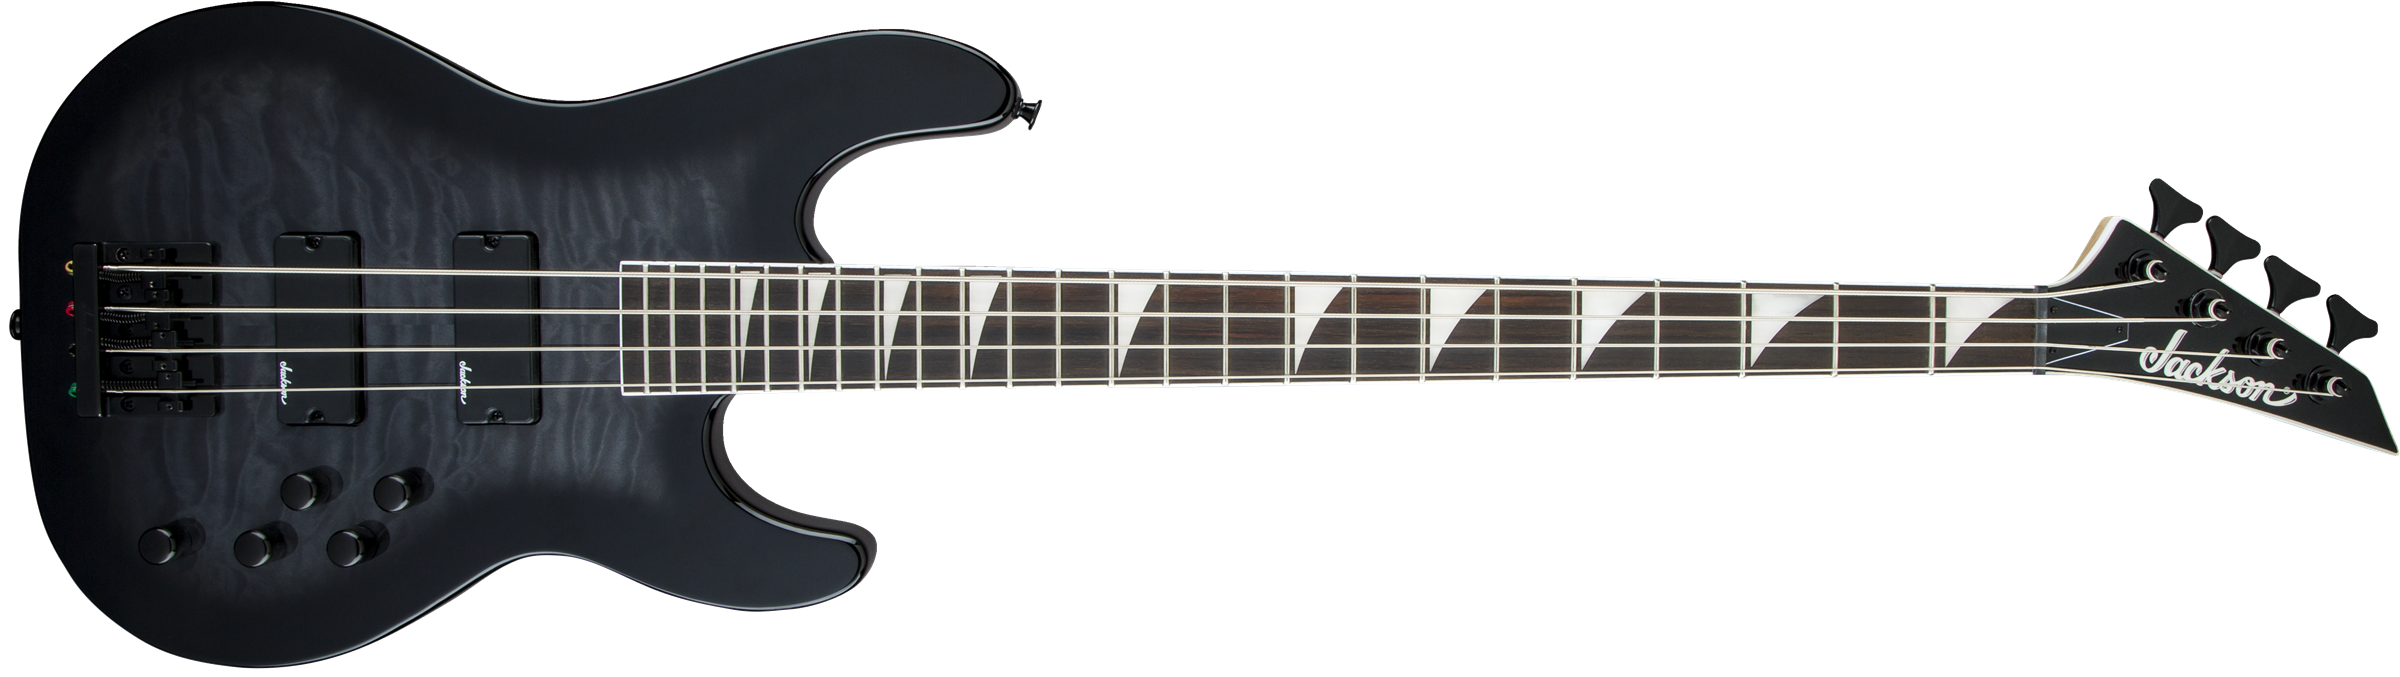 Dean Bass Wiring Diagram P Special Wire Diagrams For Beautiful Harmony Elaboration Everything You Guitar Fancy